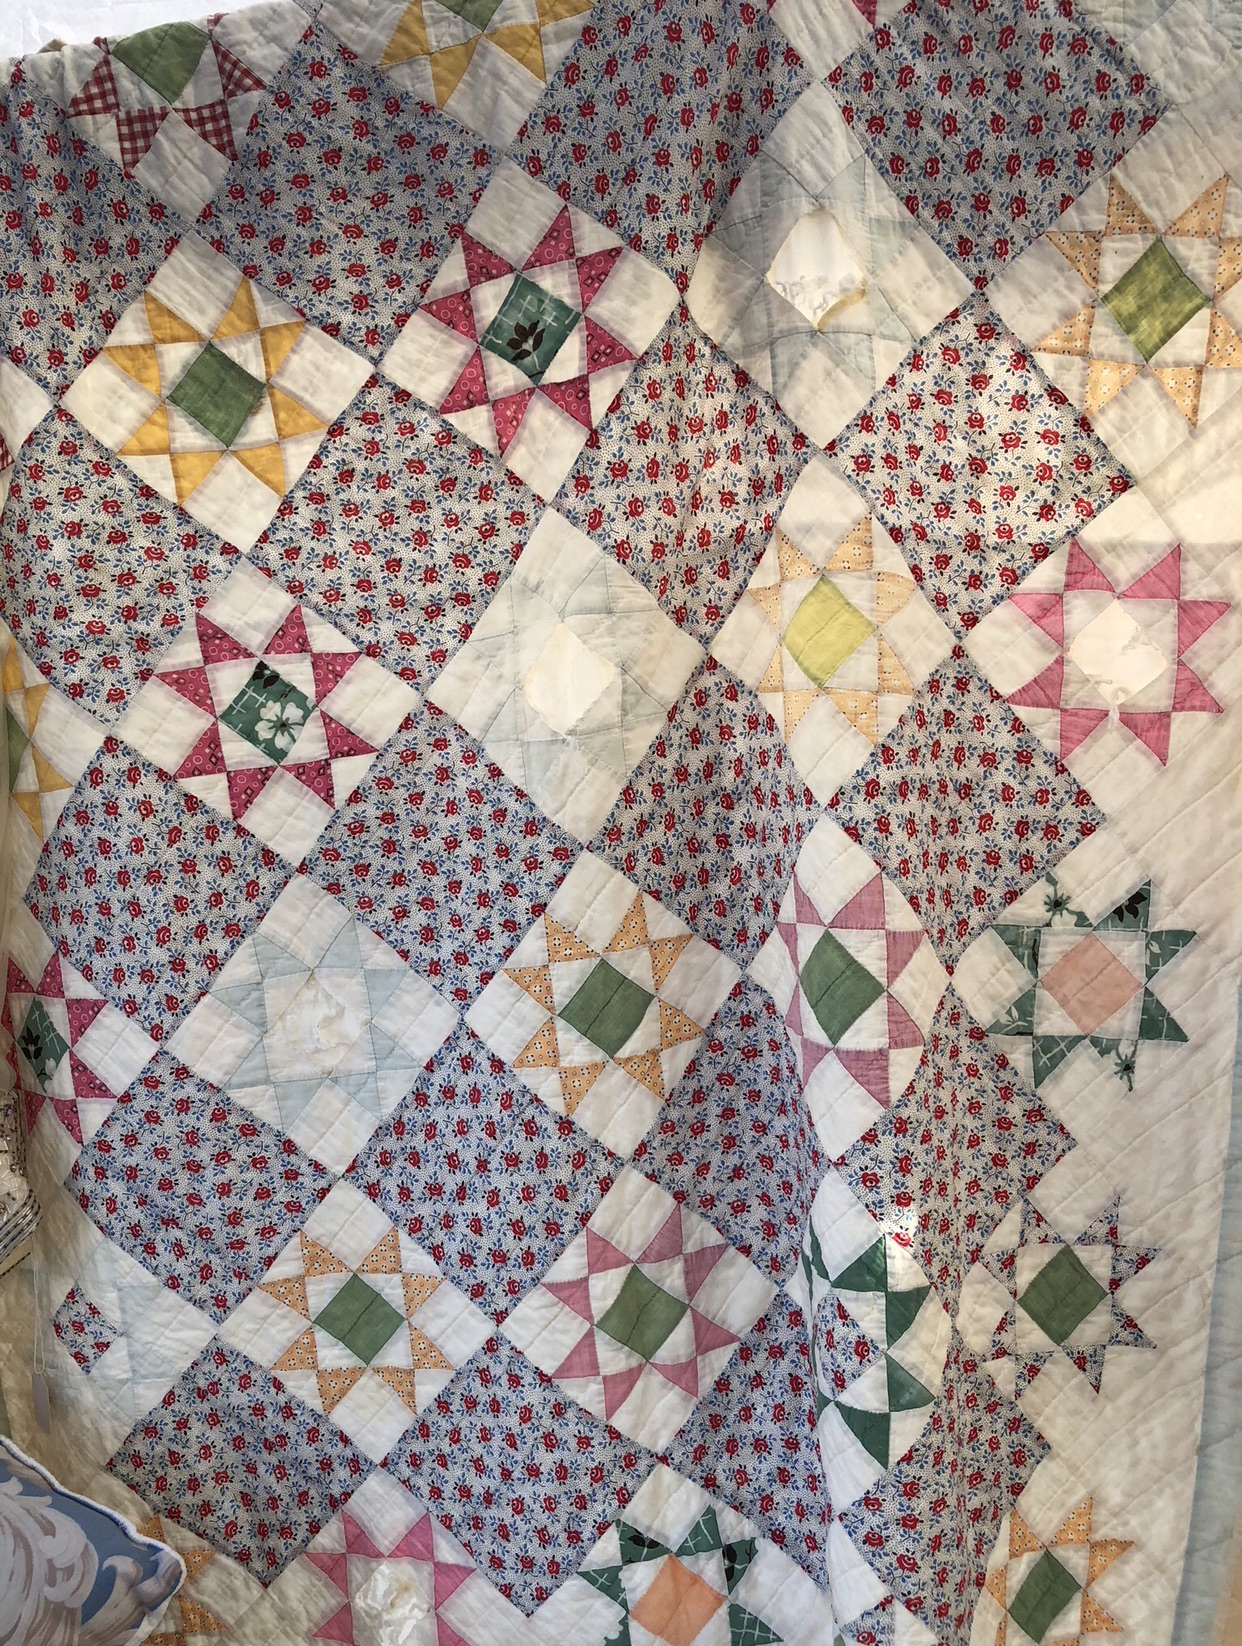 This is the original quilt that inspired Margot's quilt. I kept returning to it as something simple but striking.